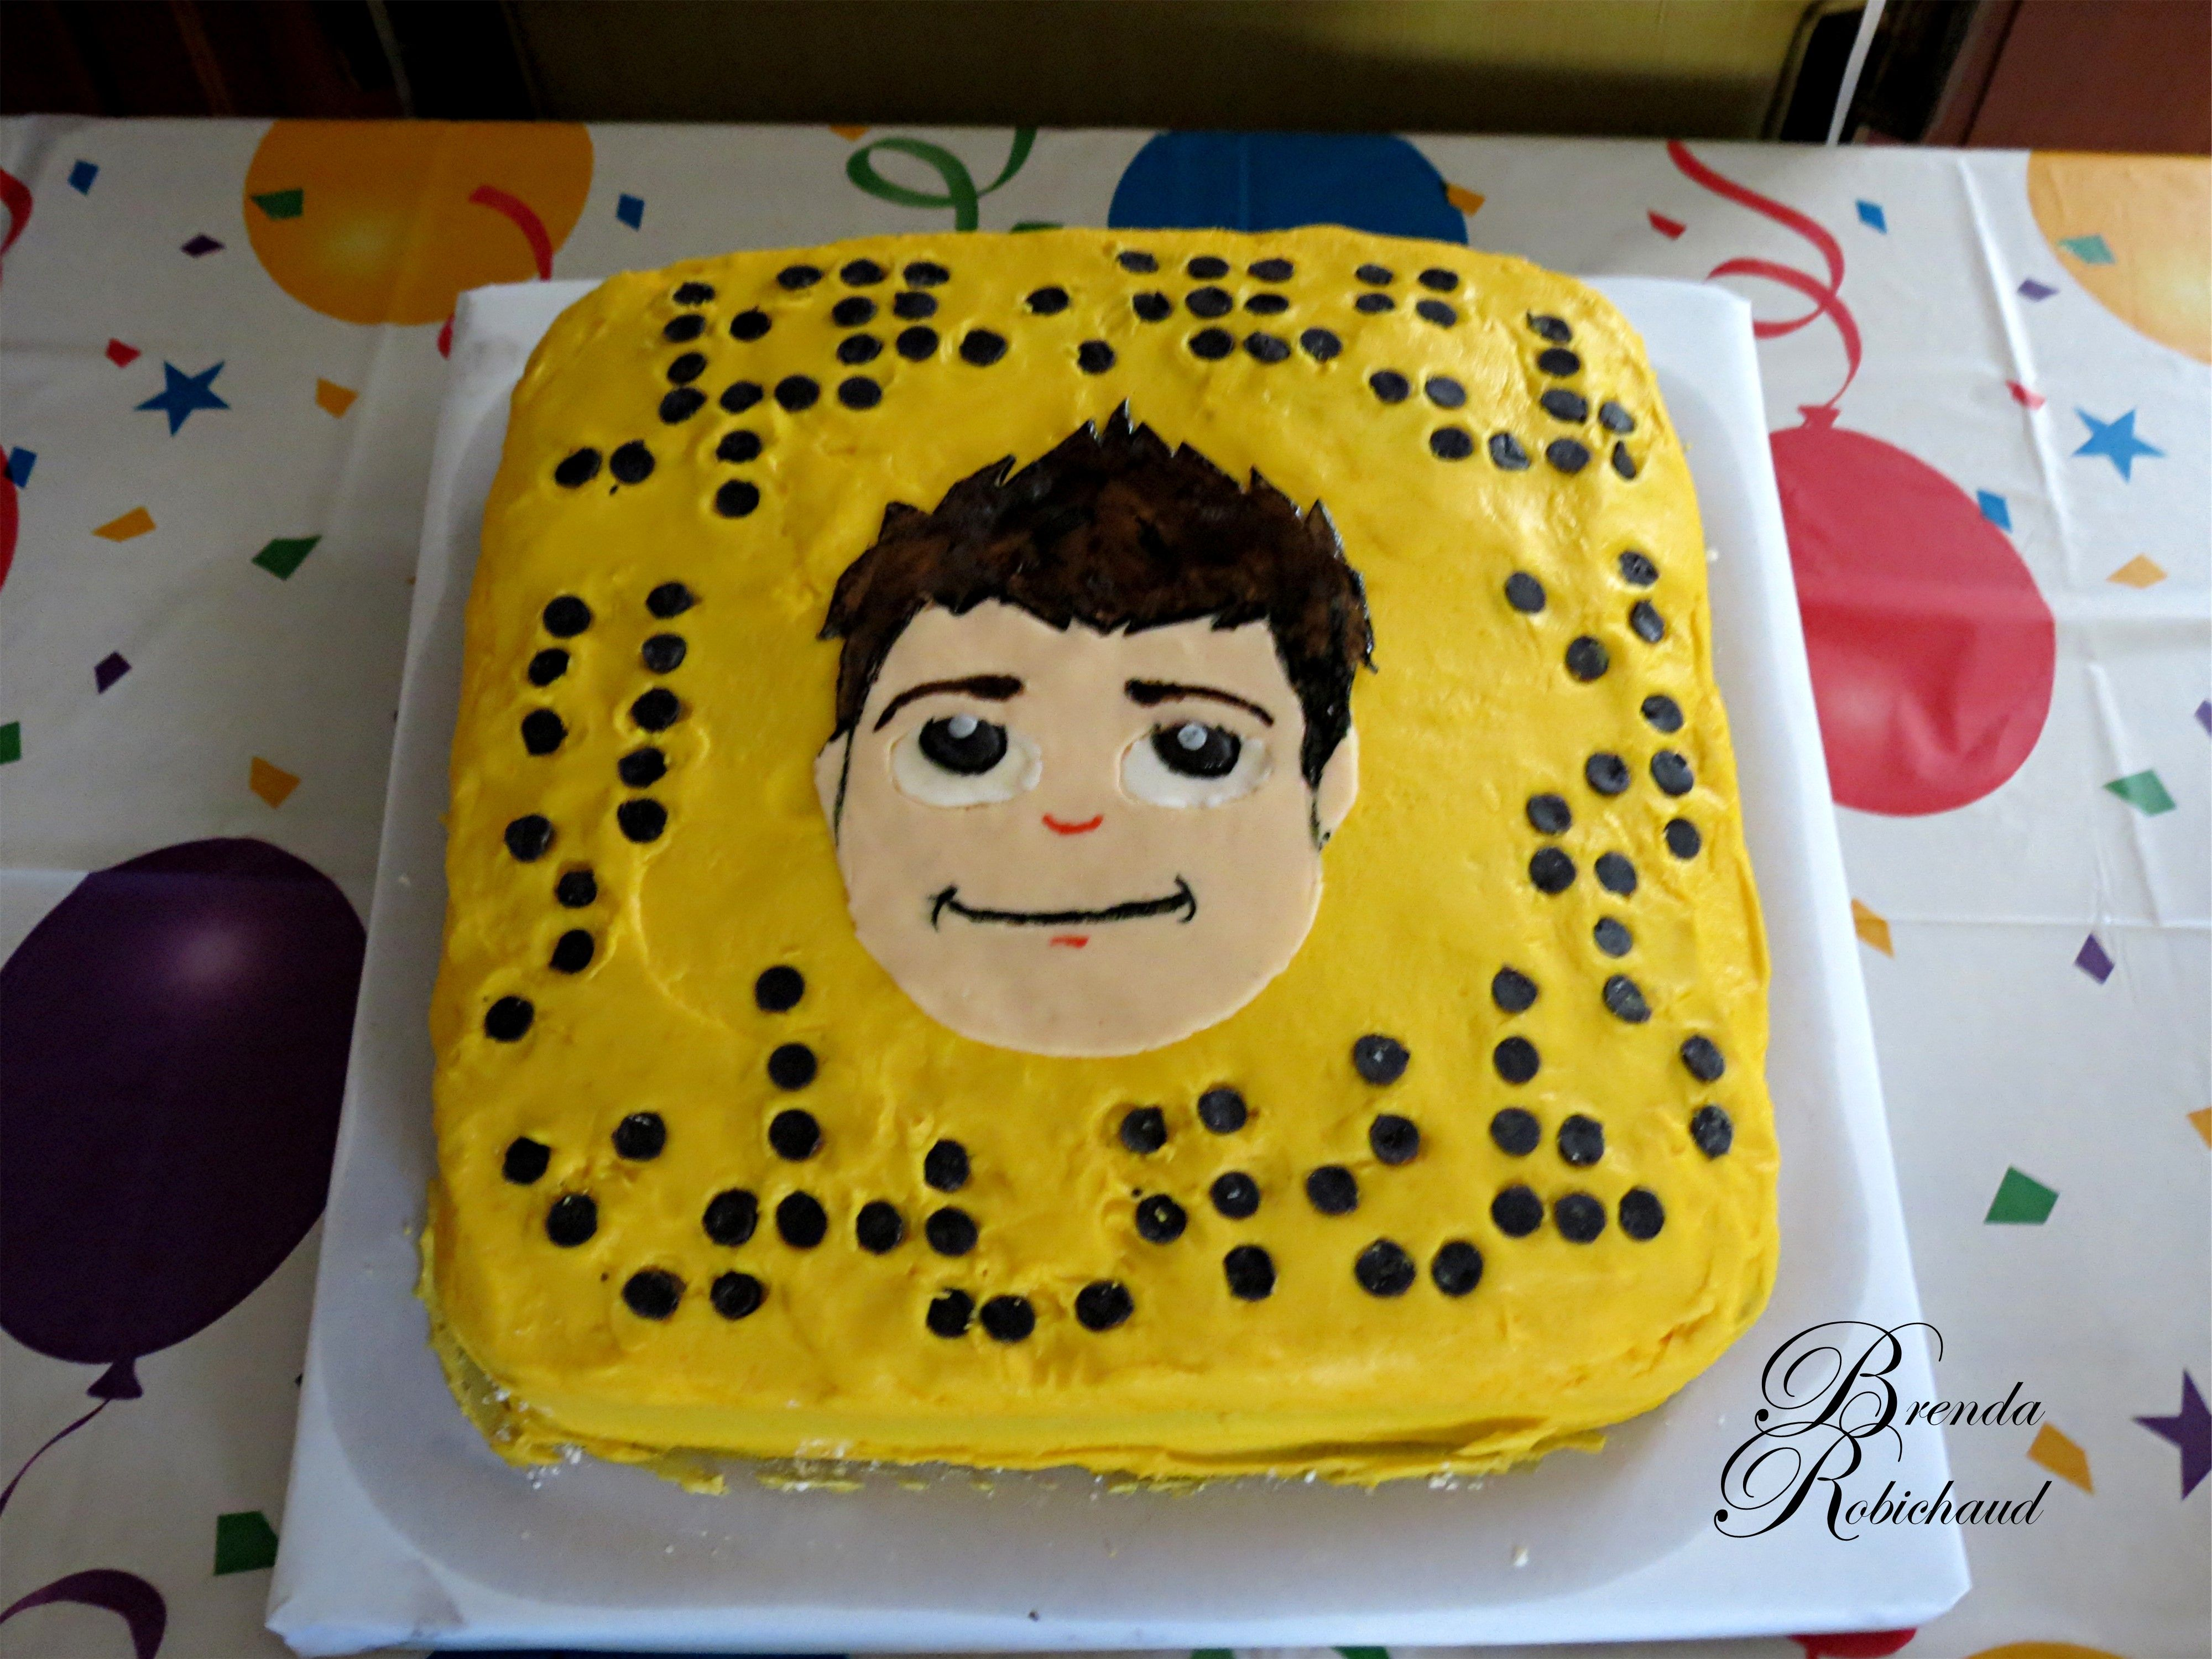 My Youngest Grandsons 14th Birthday Cake A Duplicate Of His Snap